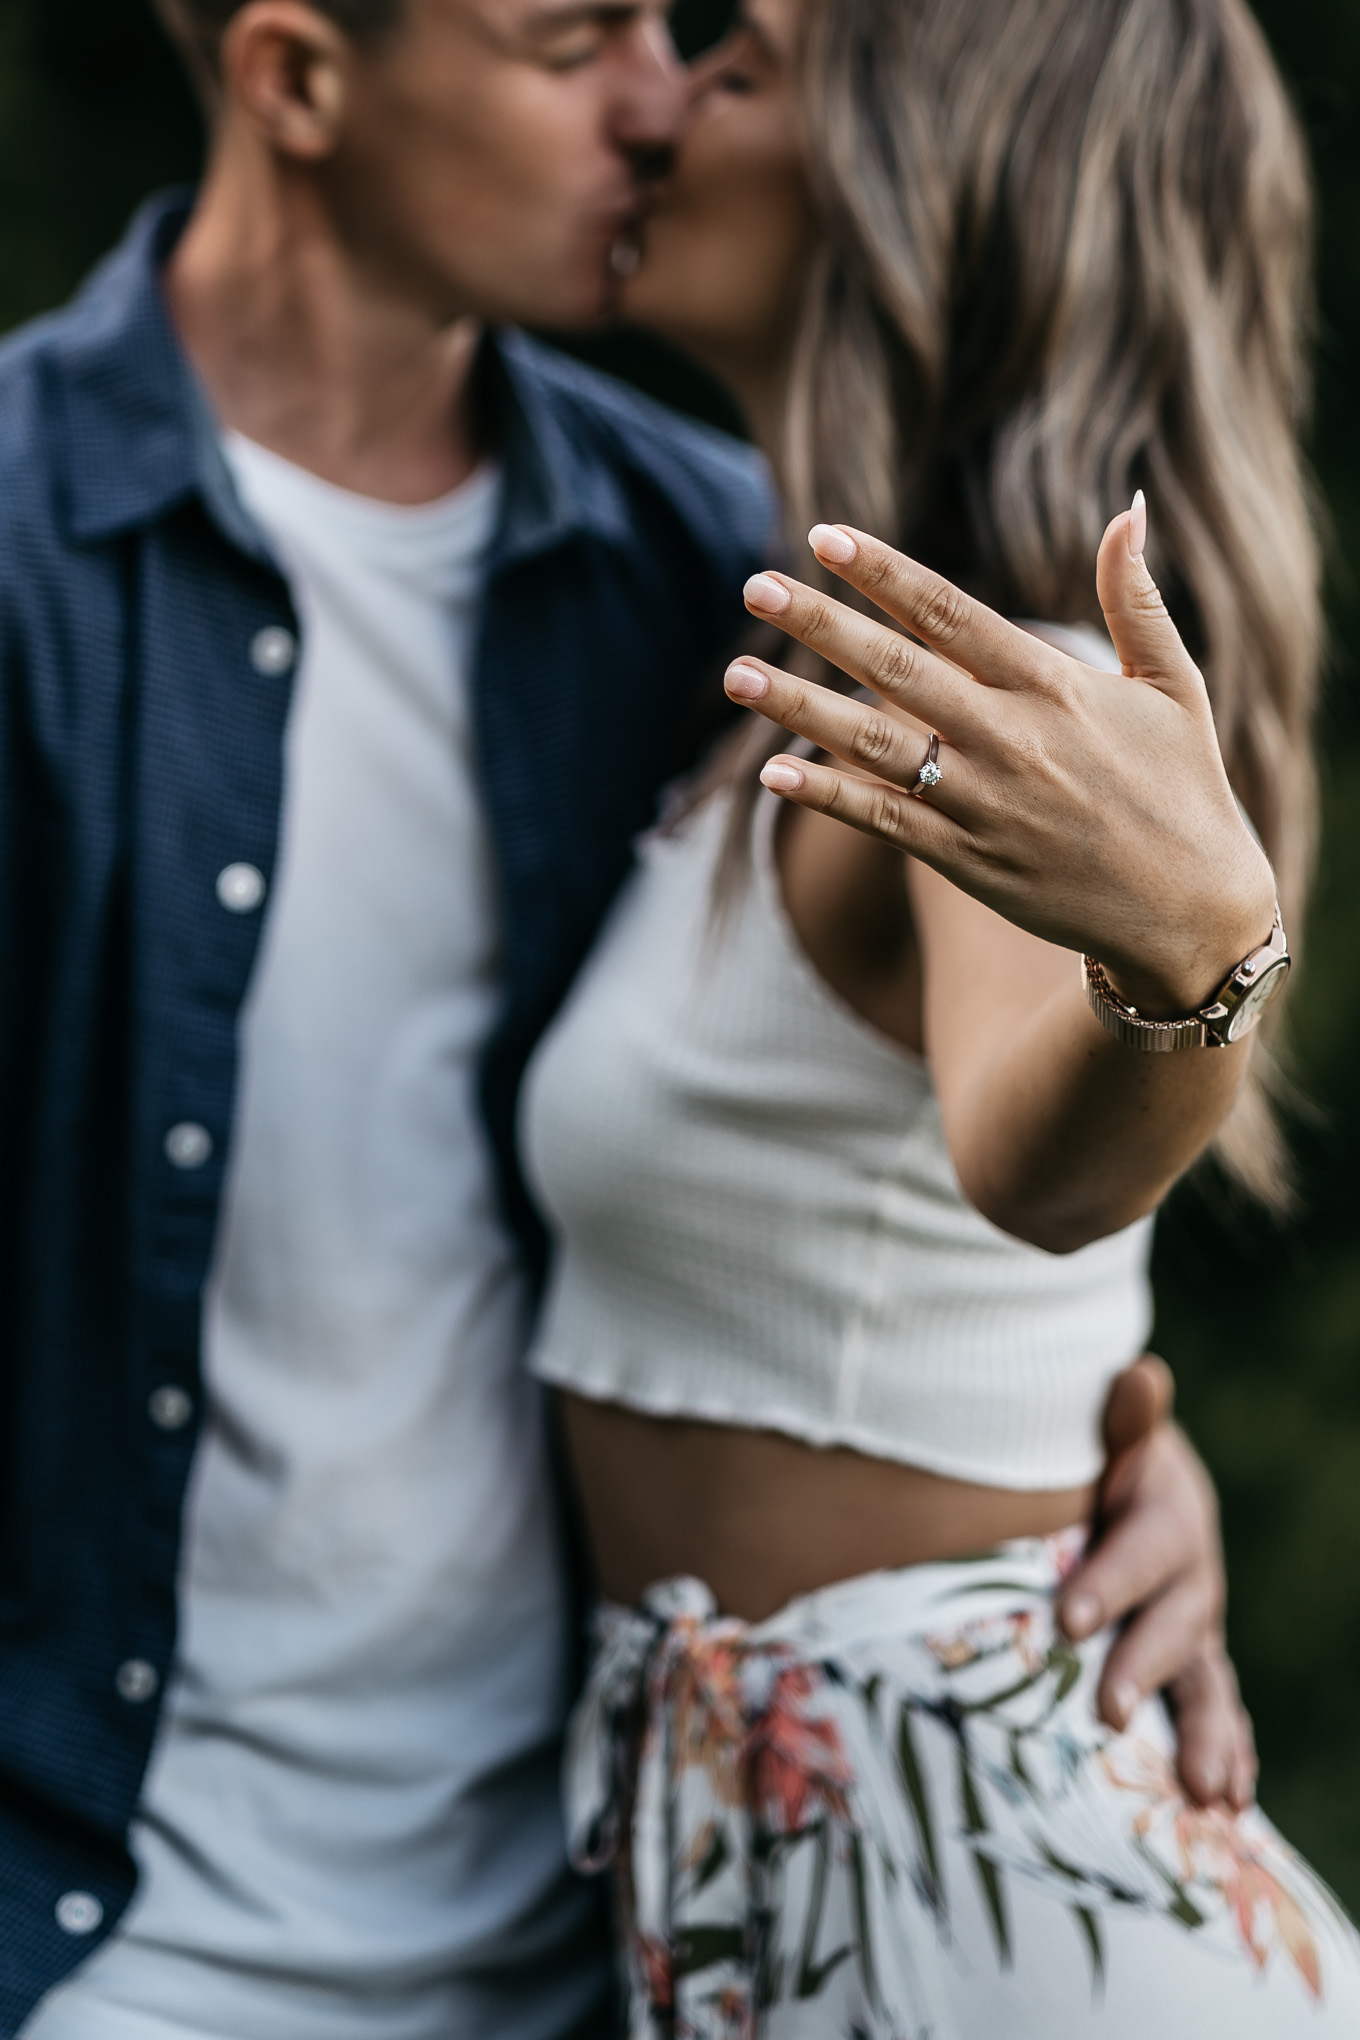 engaged couple showing ring